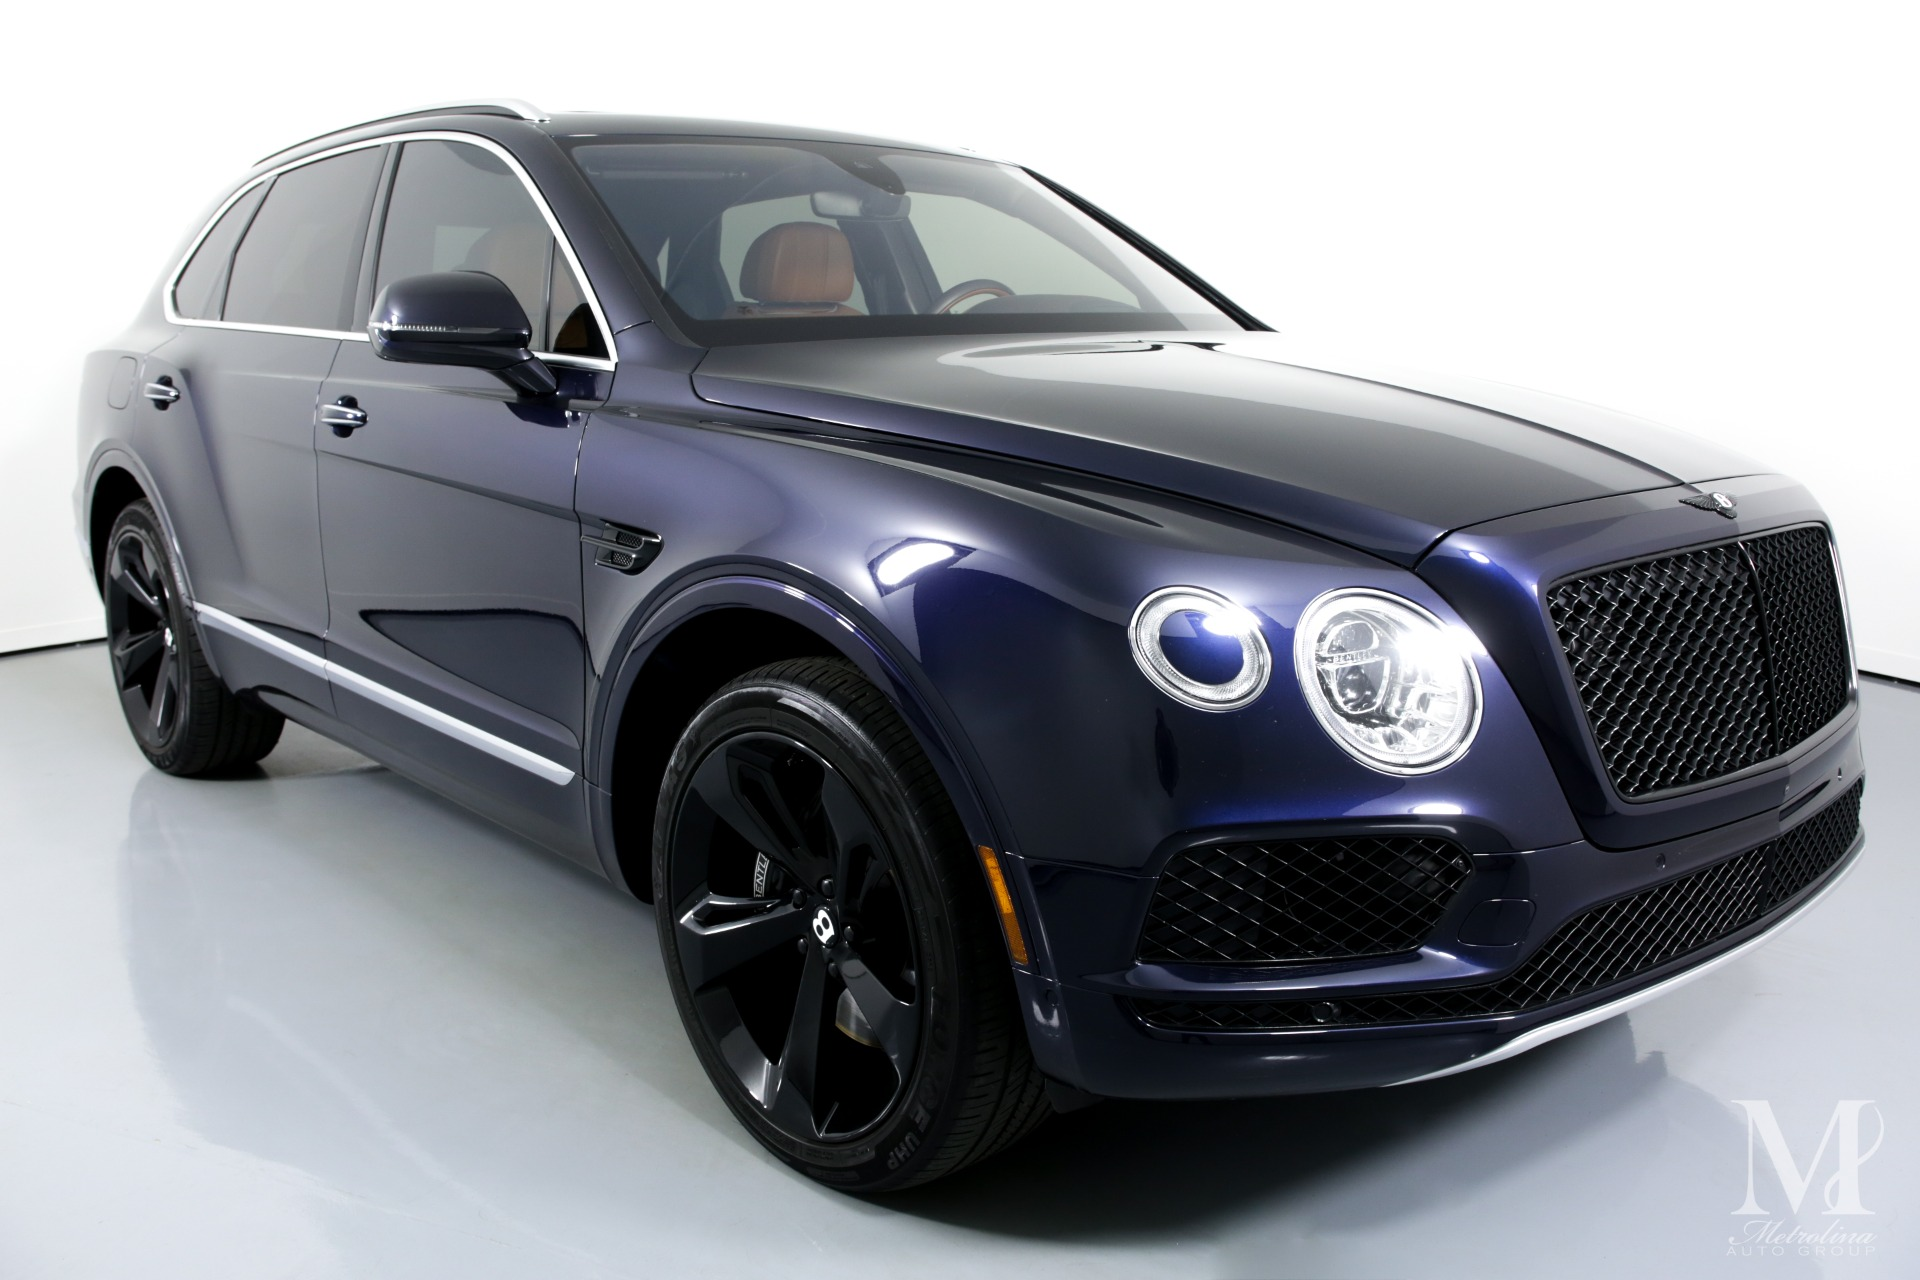 Used 2017 Bentley Bentayga W12 for sale $129,996 at Metrolina Auto Group in Charlotte NC 28217 - 2